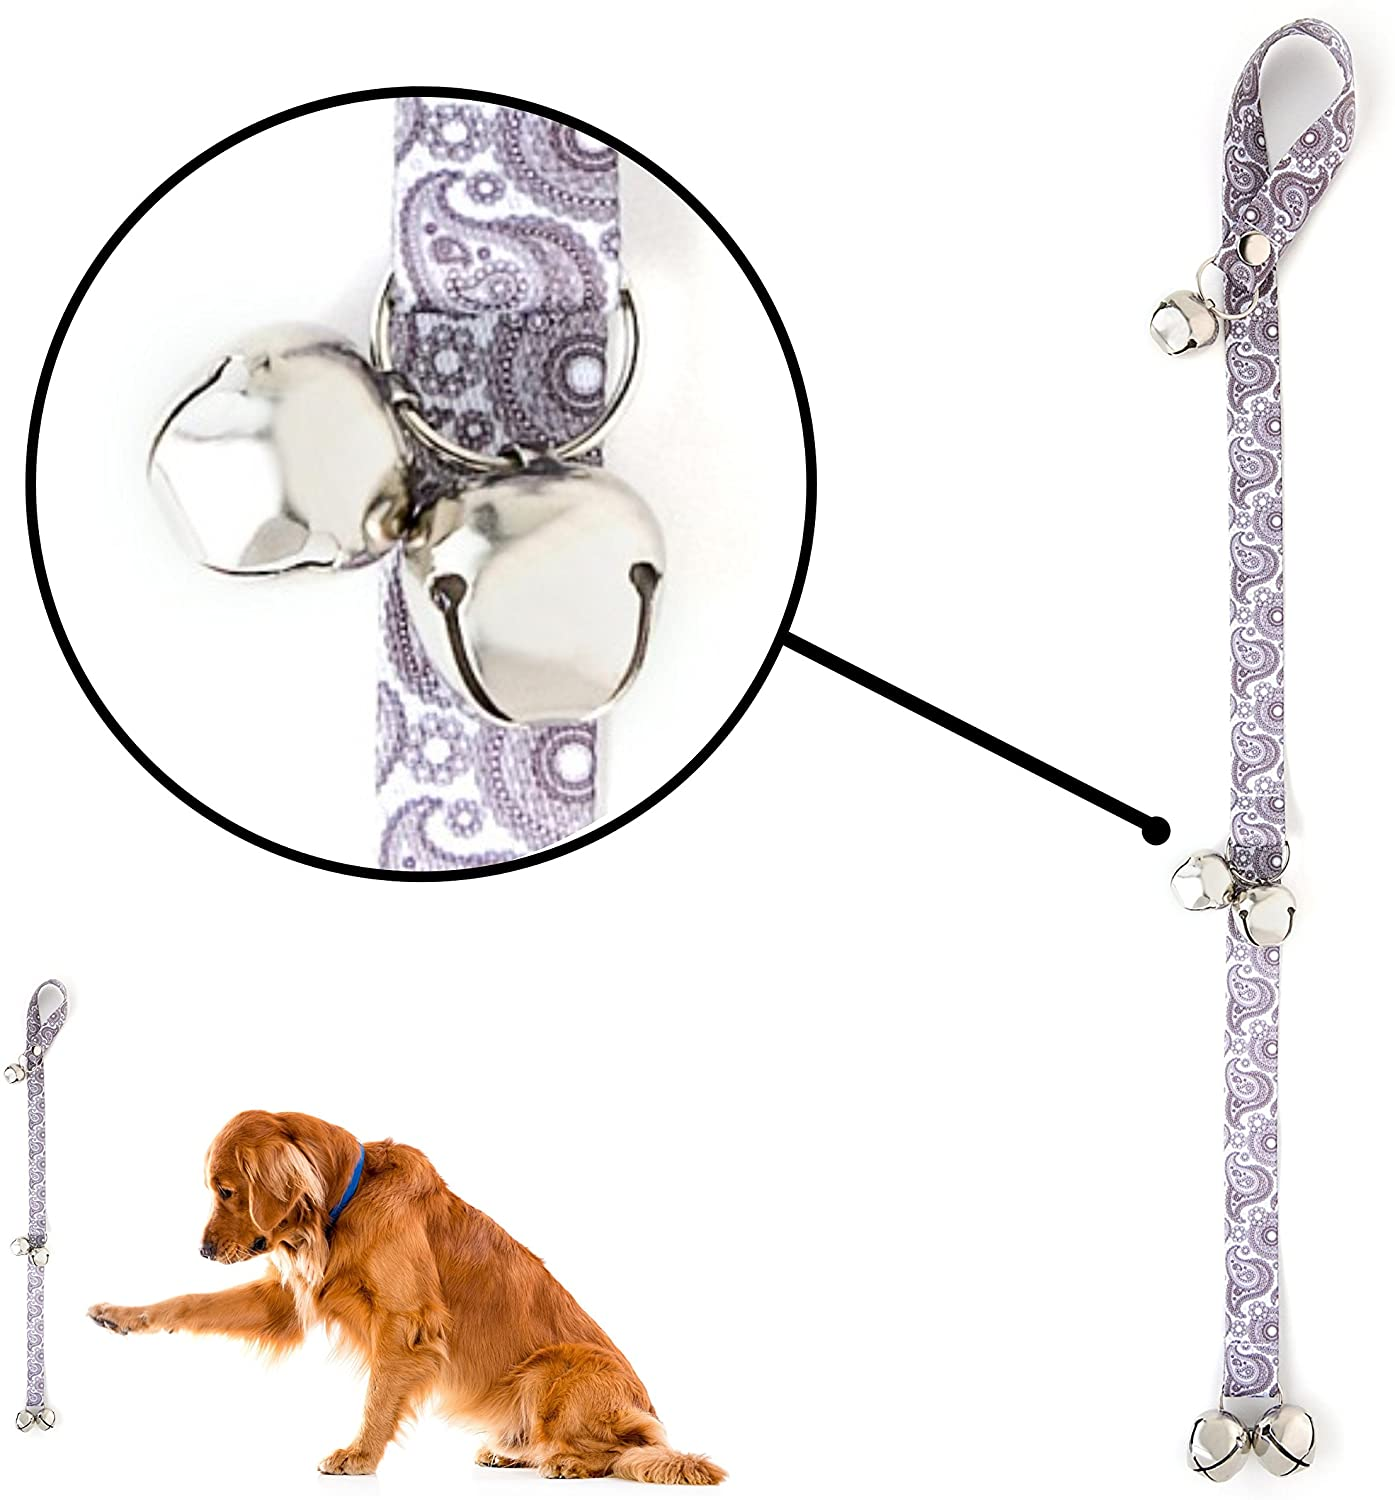 Mighty Paw Tinkle Bells 2.0, Designer Dog Doorbells, Stylish Fabric with Premium Quality Jingle Bells, Housetraining Doggy Door Bells for Potty Training, Includes Free Wall Hook